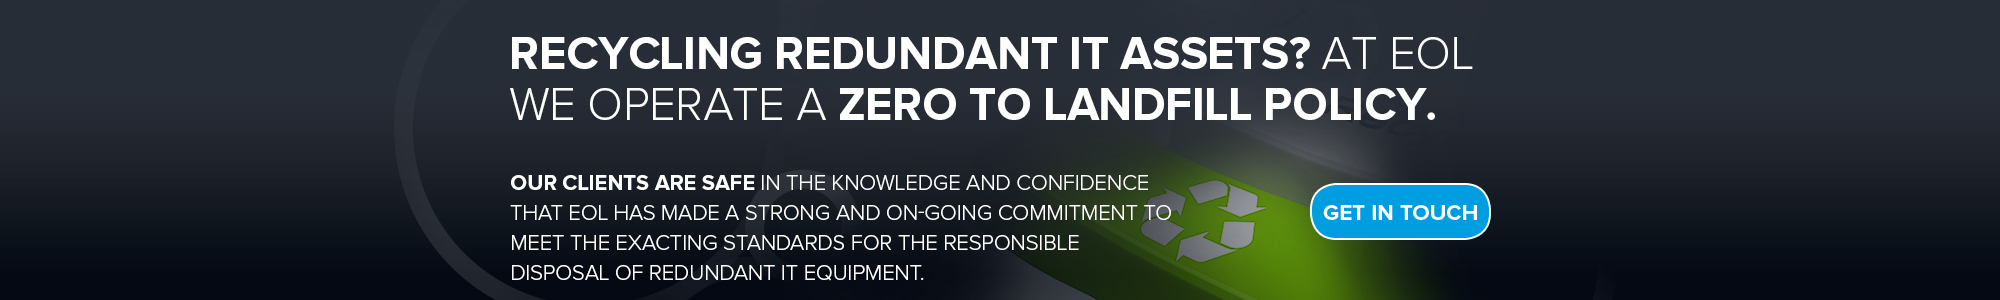 Recycling Redundant IT assets? At EOL we operate a zero to landfill policy